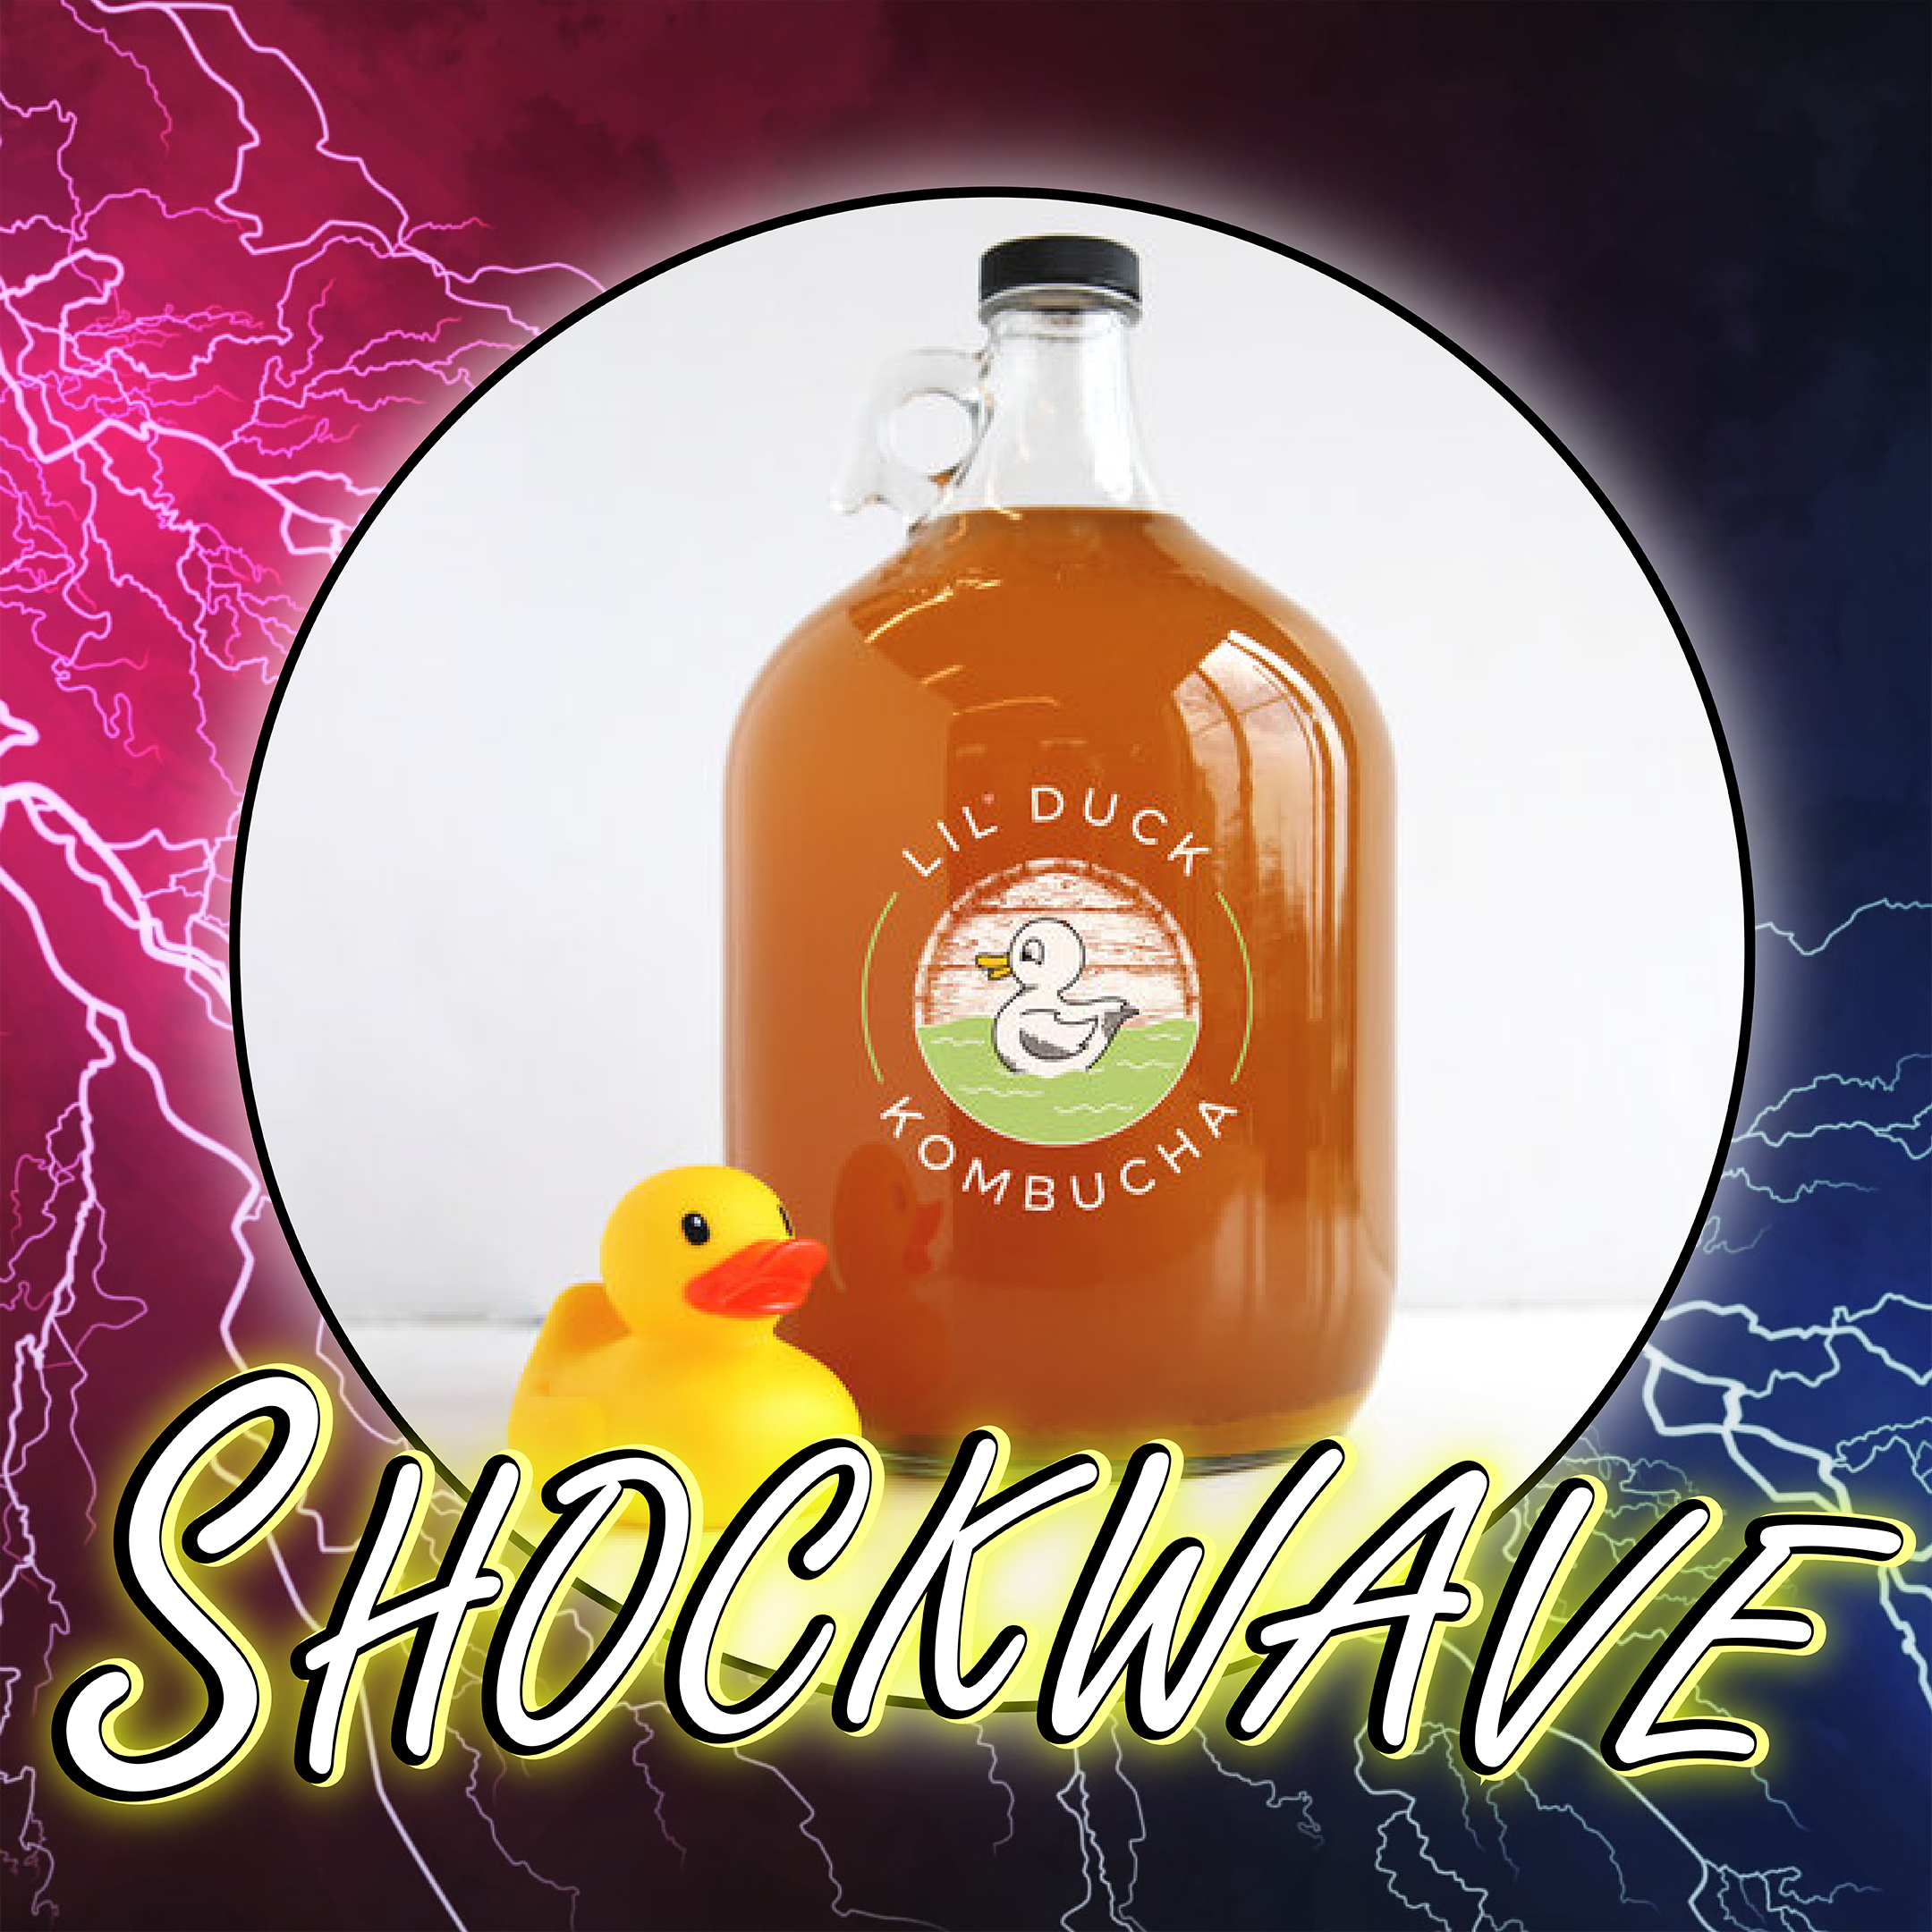 shockwave kombucha social media graphic design